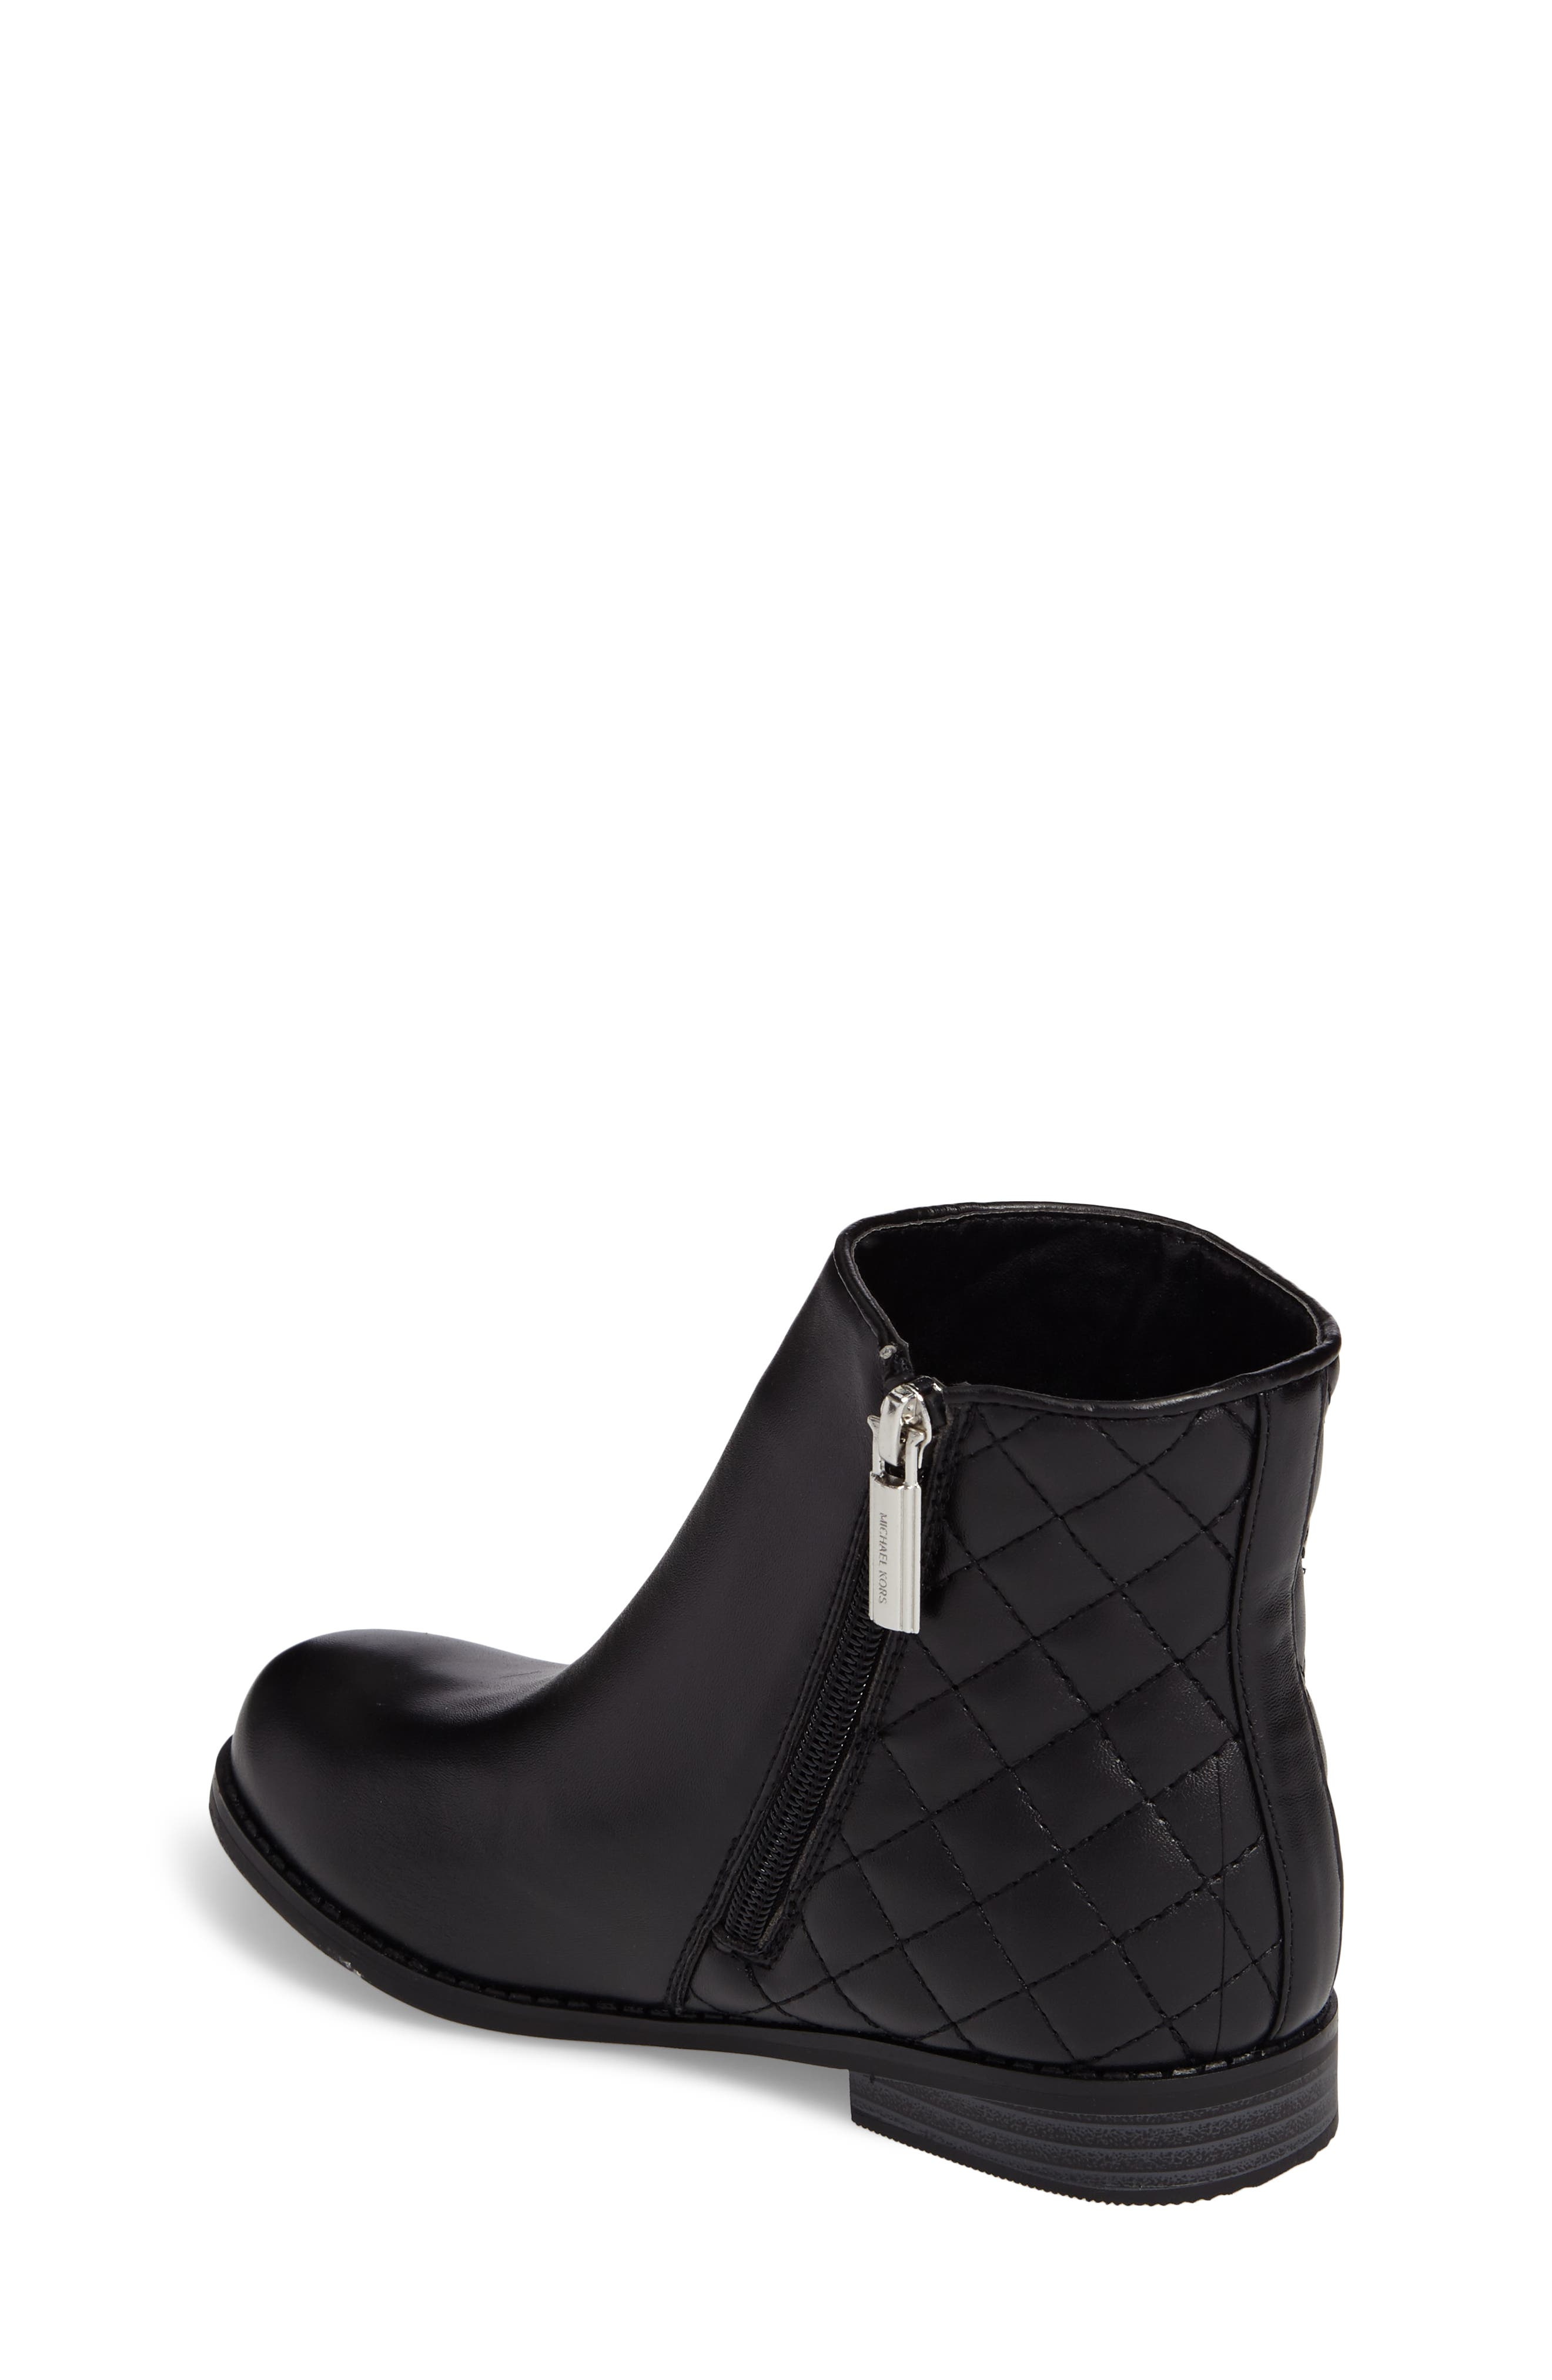 Emma Dede Quilted Bootie,                             Alternate thumbnail 2, color,                             003